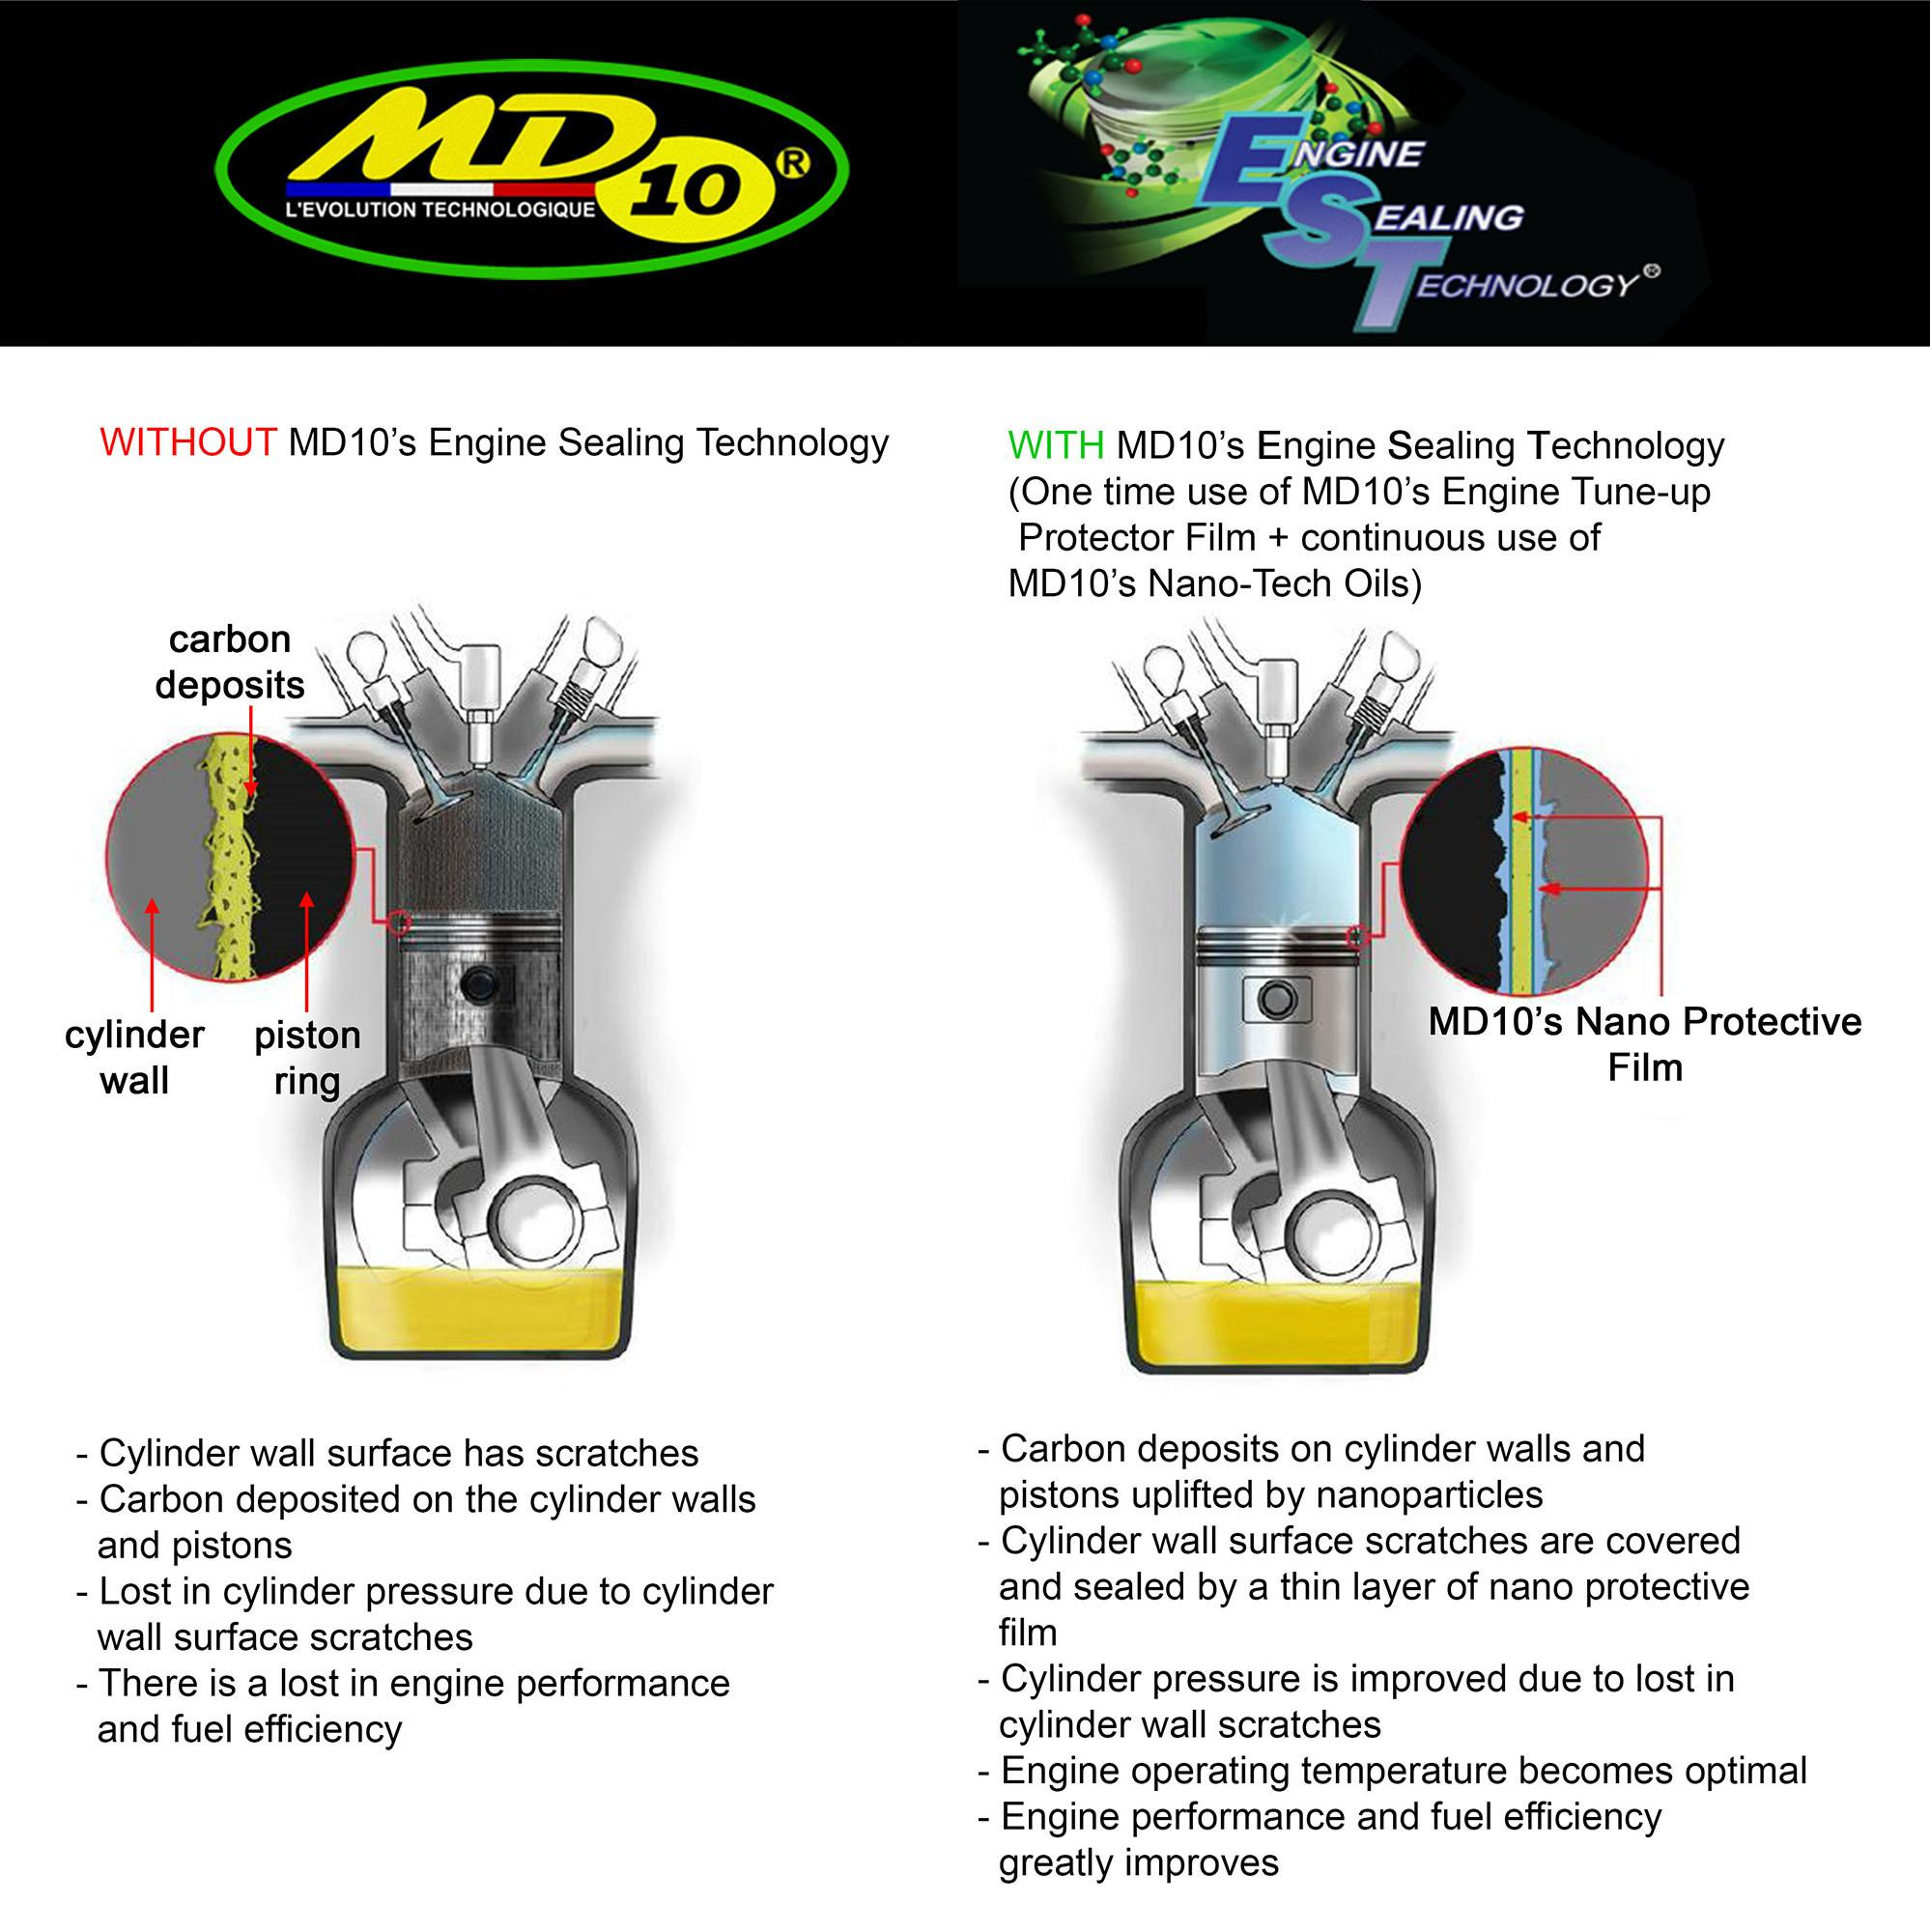 MD10 NANOTECH ENGINE TUNE-UP + PROTECTOR FILM MOTOR 60S TREATMENT (treats  4L to 10L)